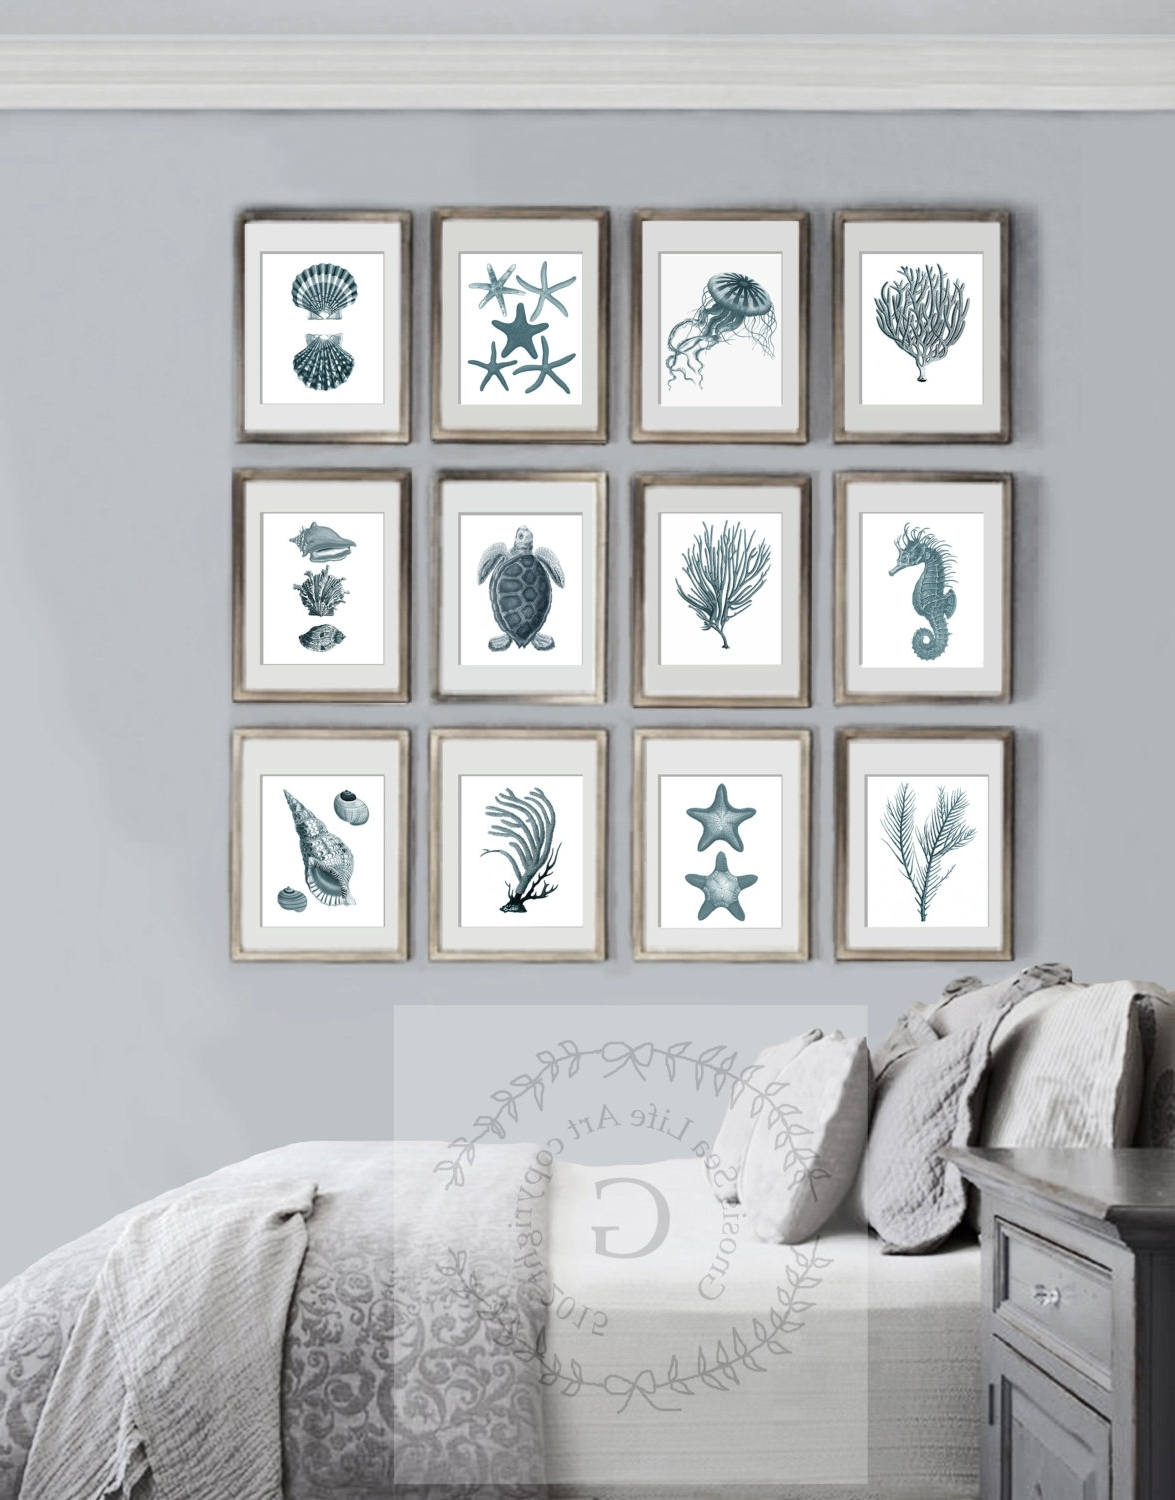 Current Stunning Design Ideas Coastal Wall Art 20 Of Canvas Crate Barrel Throughout Crate And Barrel Wall Art (Gallery 11 of 20)